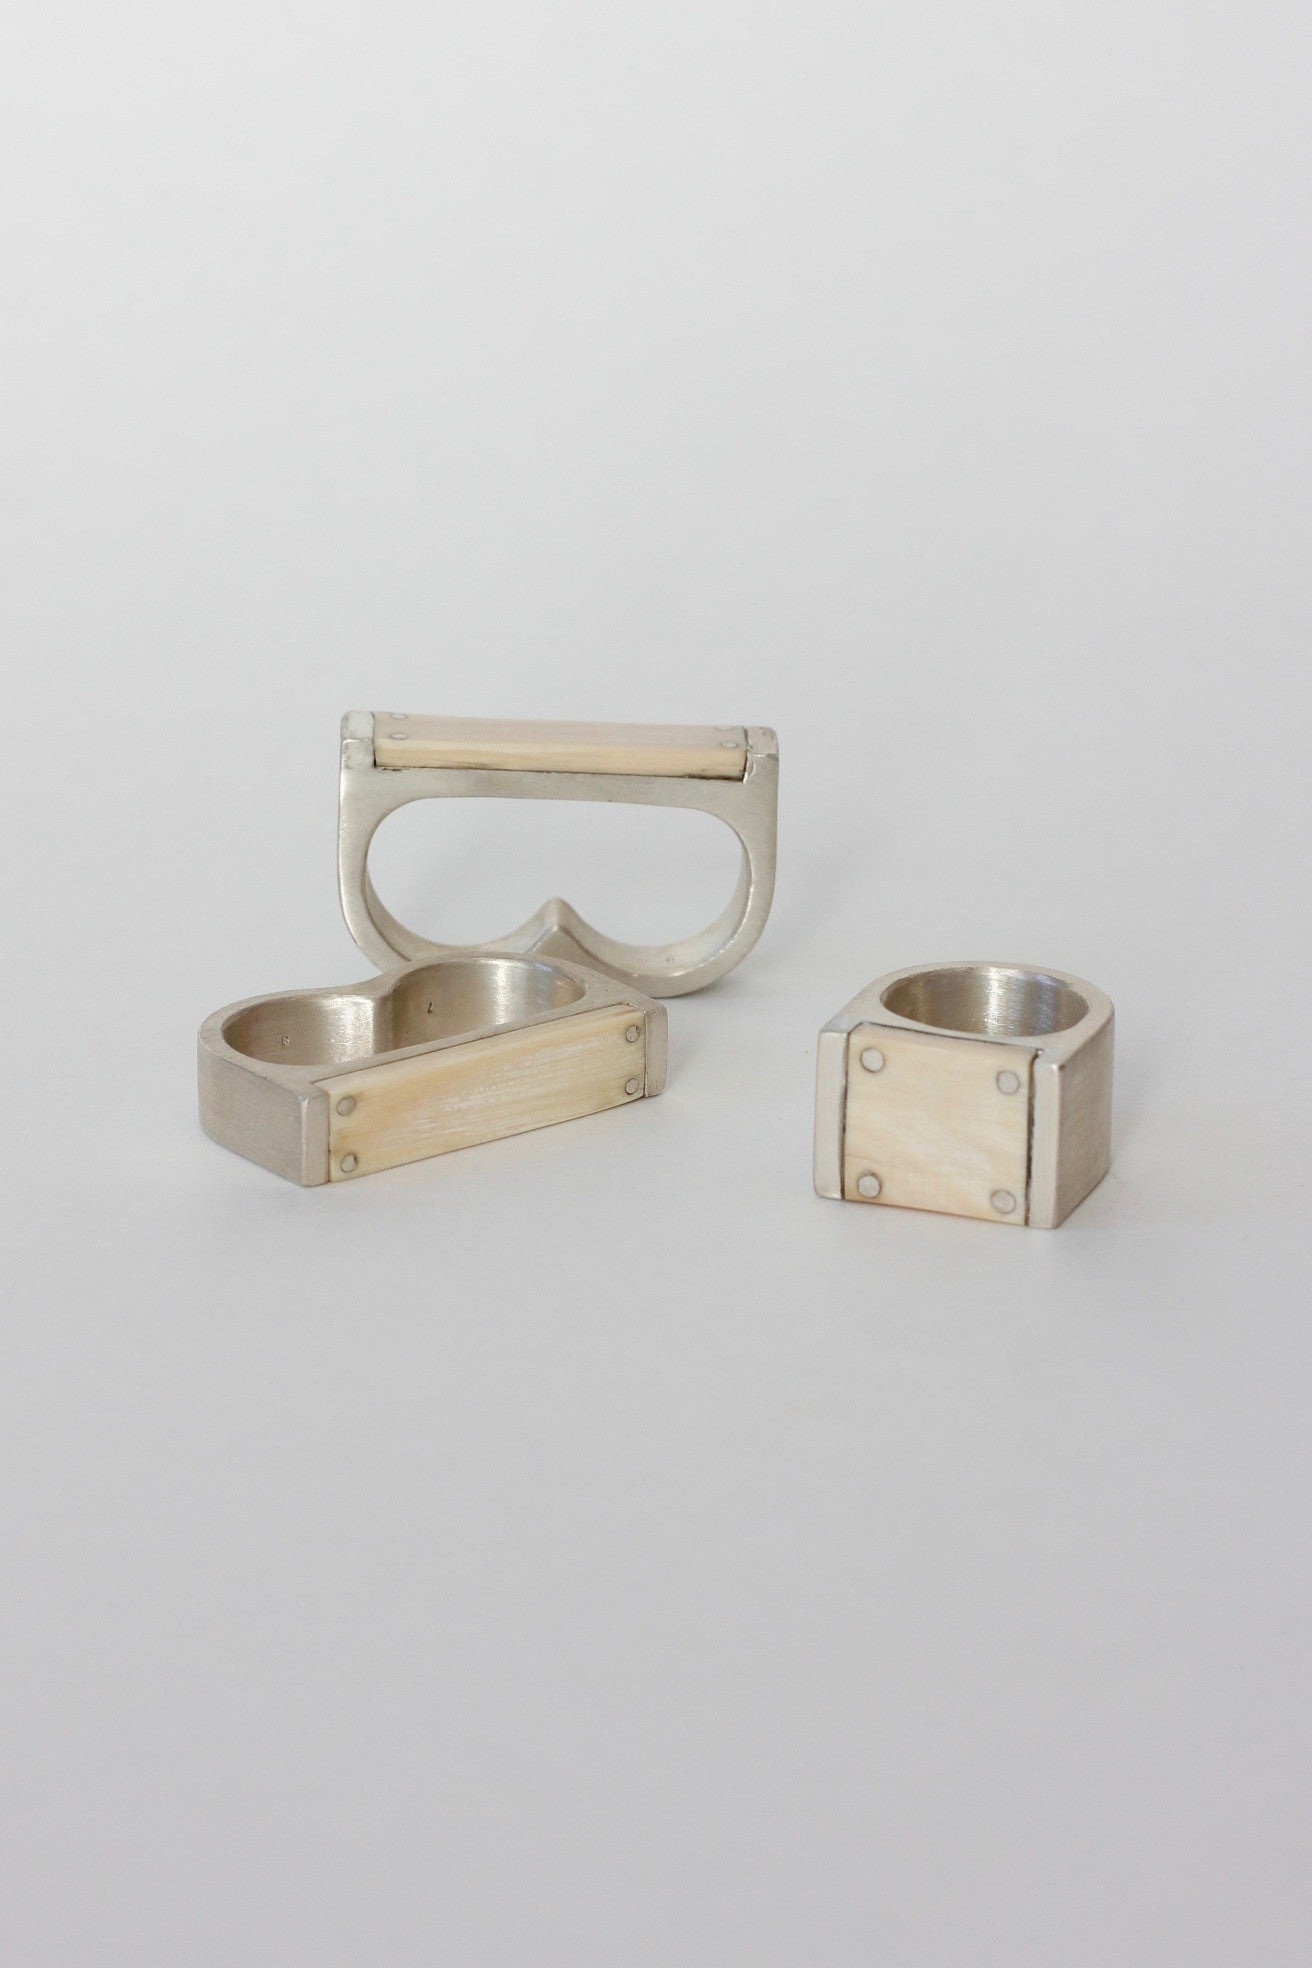 PARTS OF FOUR Double Plate RIng 9mm